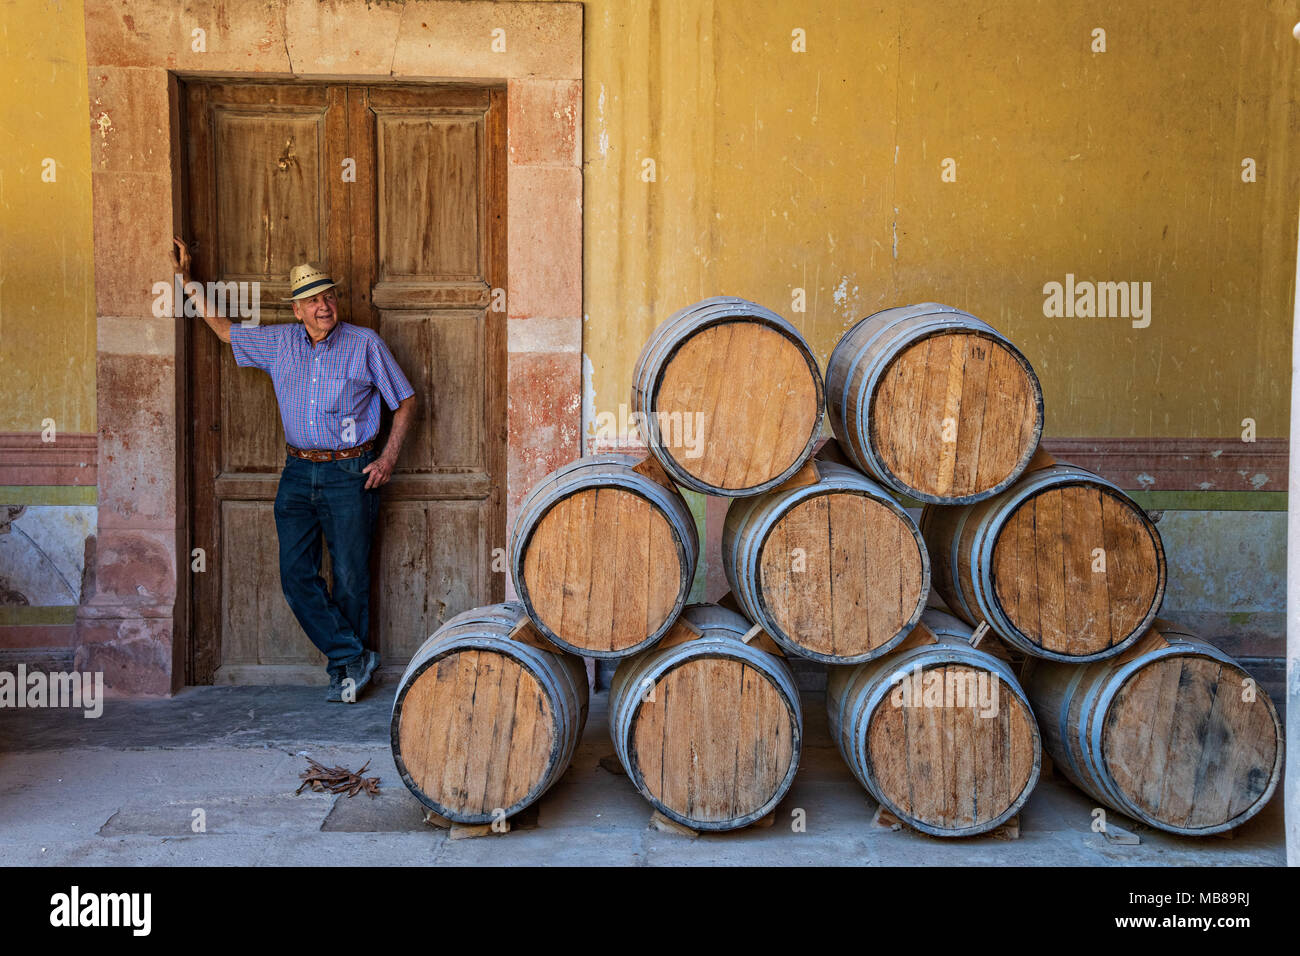 A worker rests by the oak barrels filled with Mezcal as they age under the derelict arches of the Hacienda de Jaral de Berrio in Jaral de Berrios, Guanajuato, Mexico. The abandoned Jaral de Berrio hacienda was once the largest in Mexico and housed over 6,000 people on the property and is credited with creating Mescal. - Stock Image